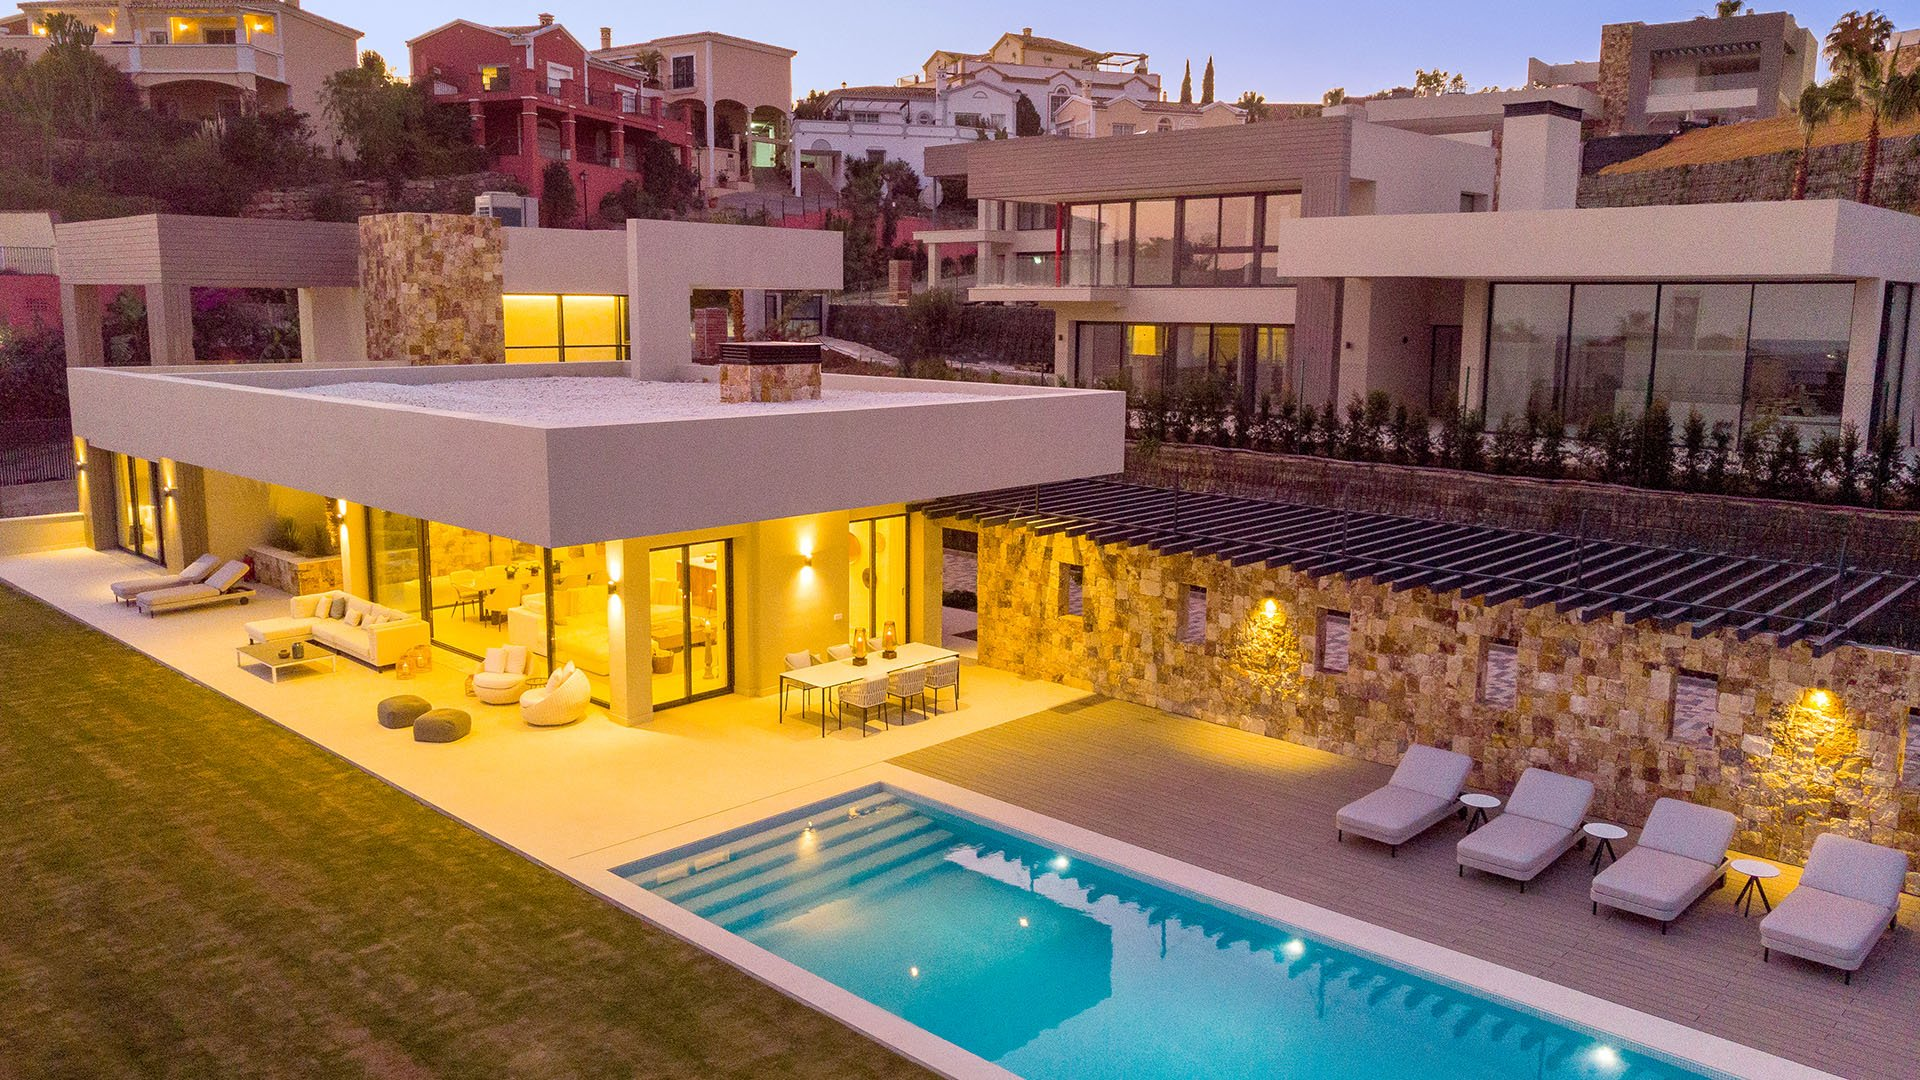 Anamaya: Boutique development of 5 contemporary luxury villas in Marbella